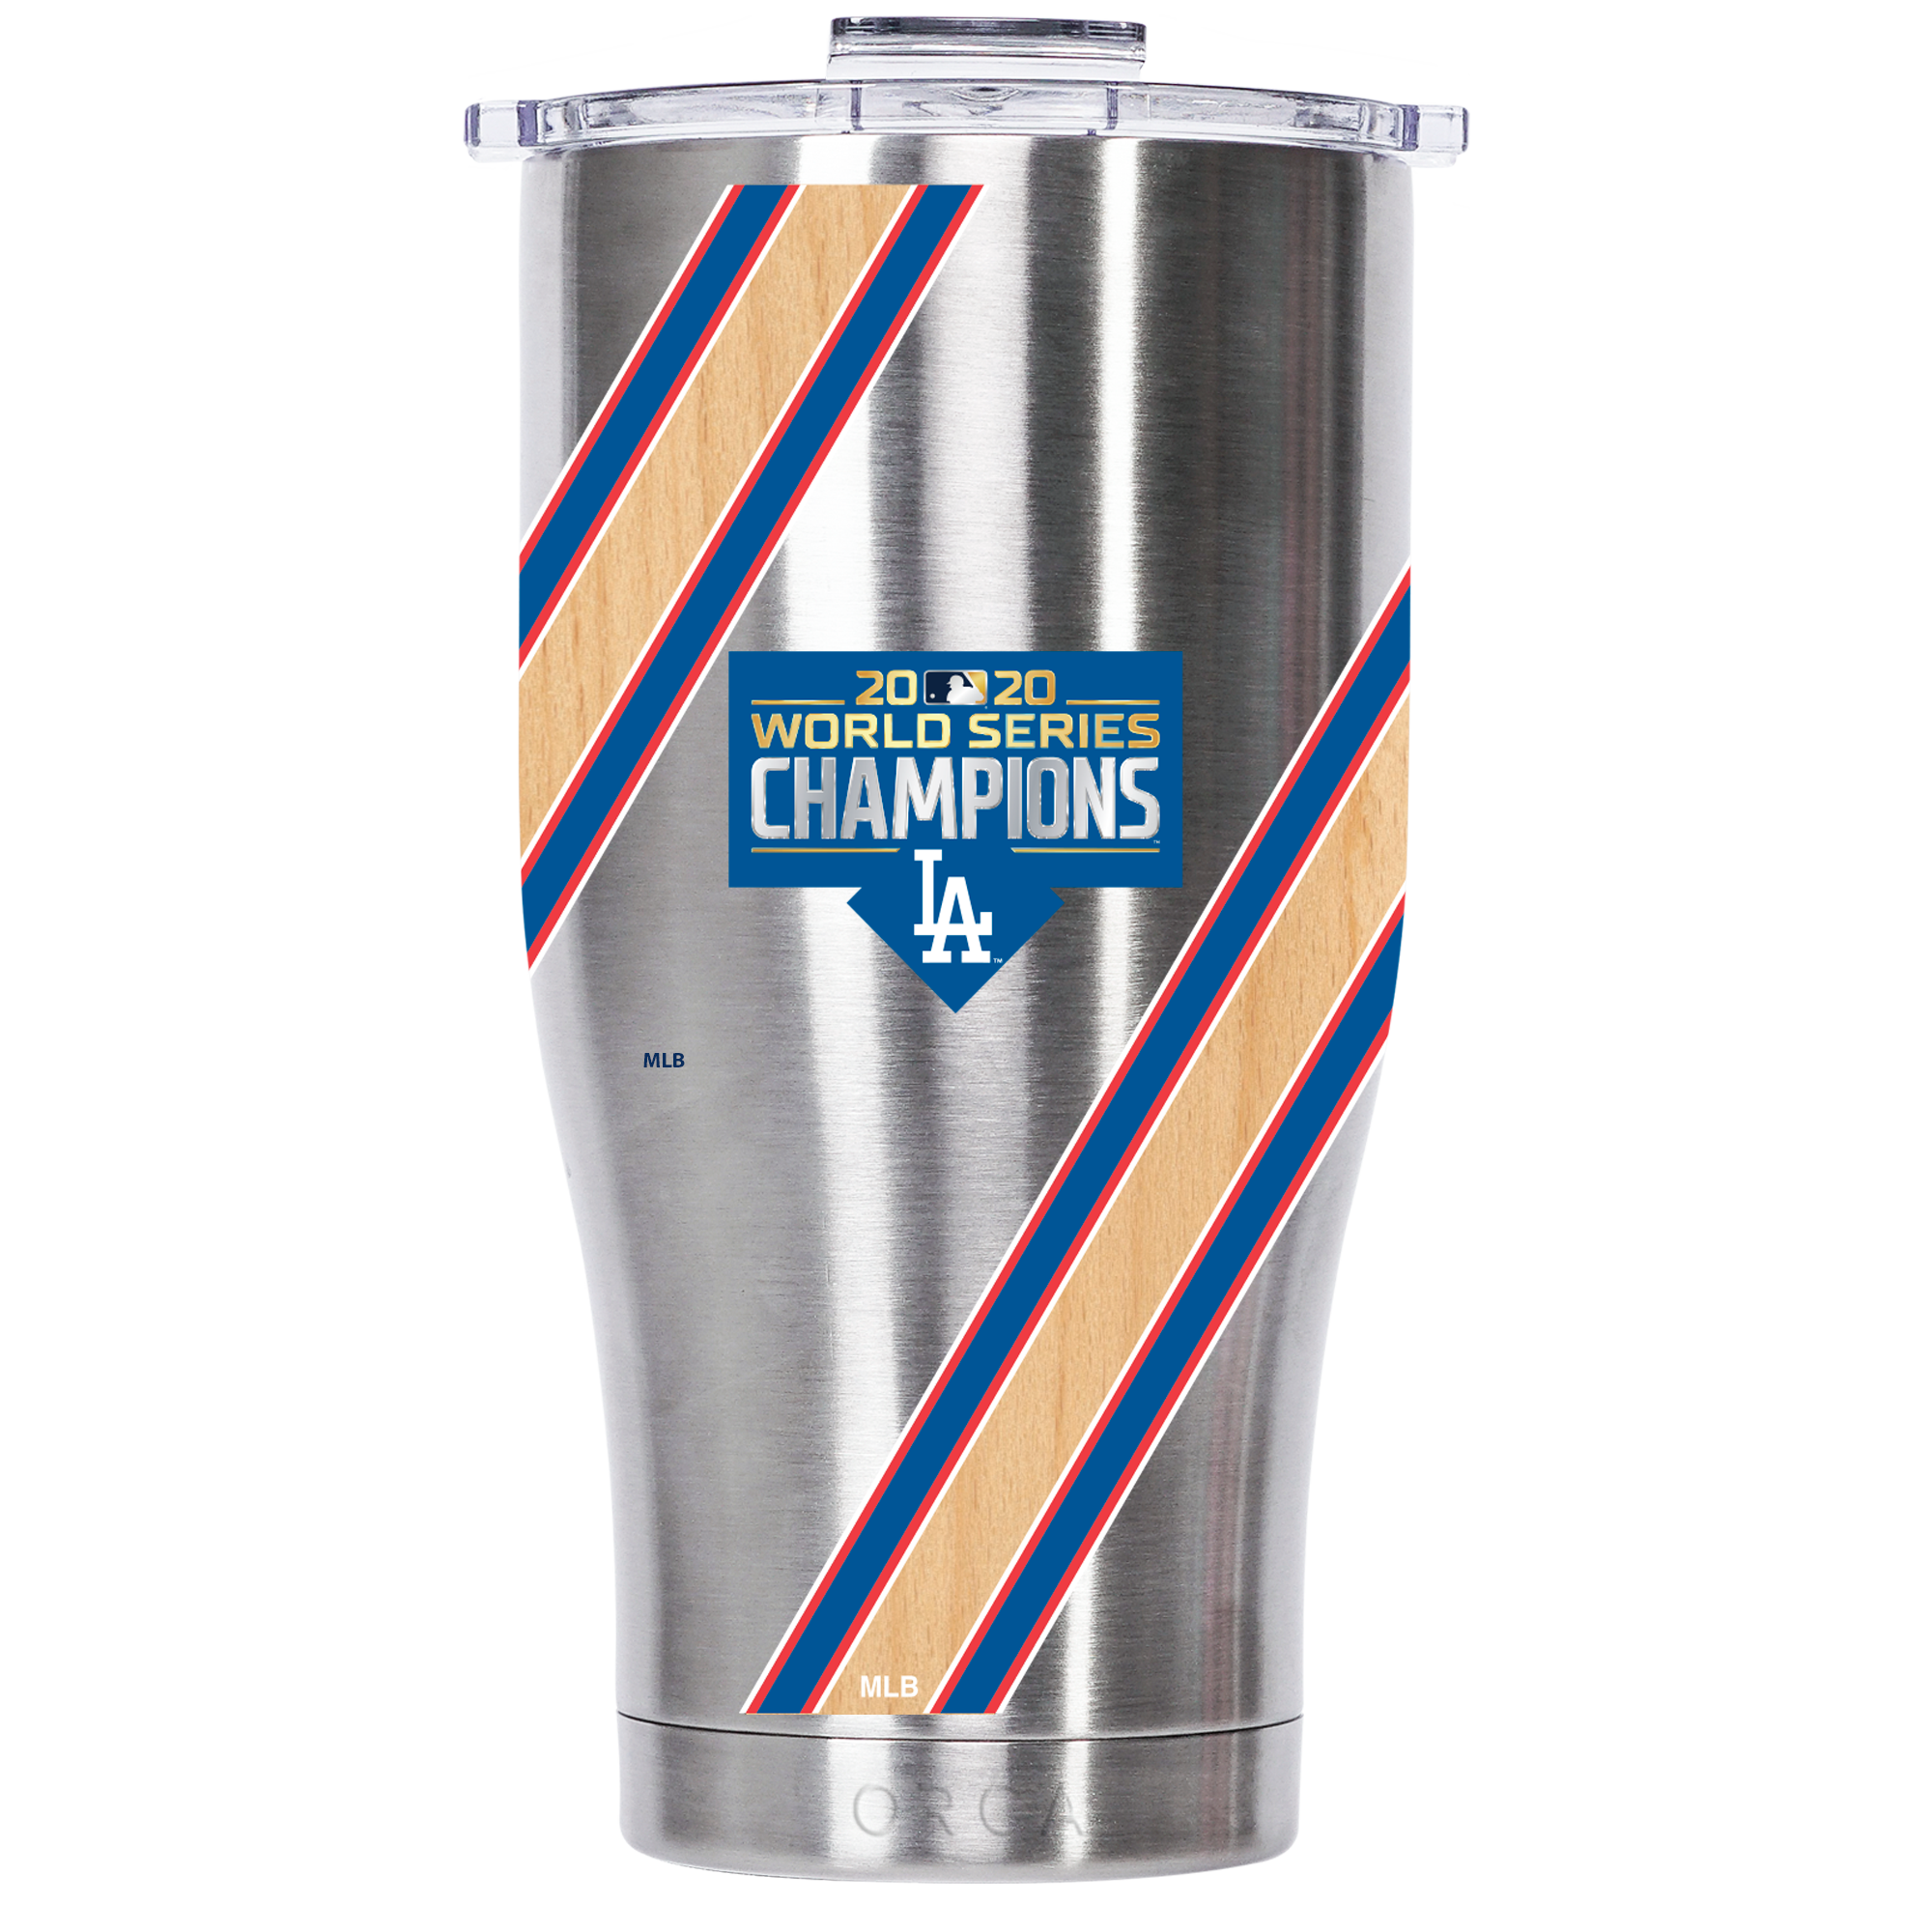 WS Champs 2020 Los Angeles Dodgers Wood Stainless Chaser 27 oz. - ORCA